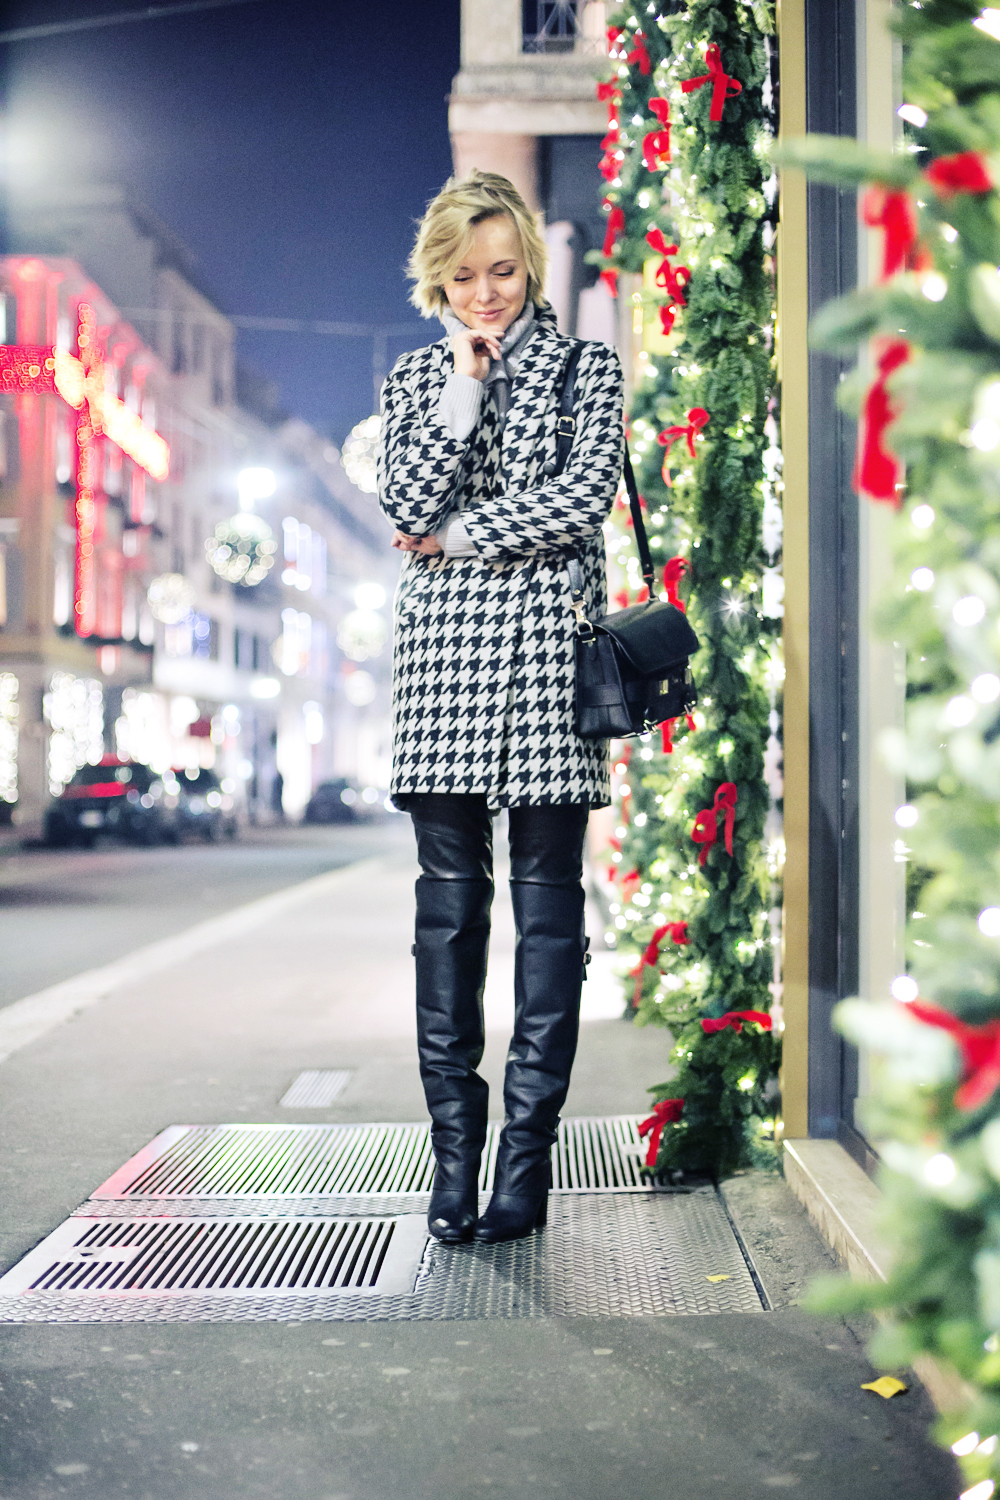 thecablook darya kamalova fashion blog street style outfit short hair blogger sheinside grey sweater hm paris collection over knee boots asbydf leather pants leggings proenza schouler ps11 bag pixie haircut-24 copy